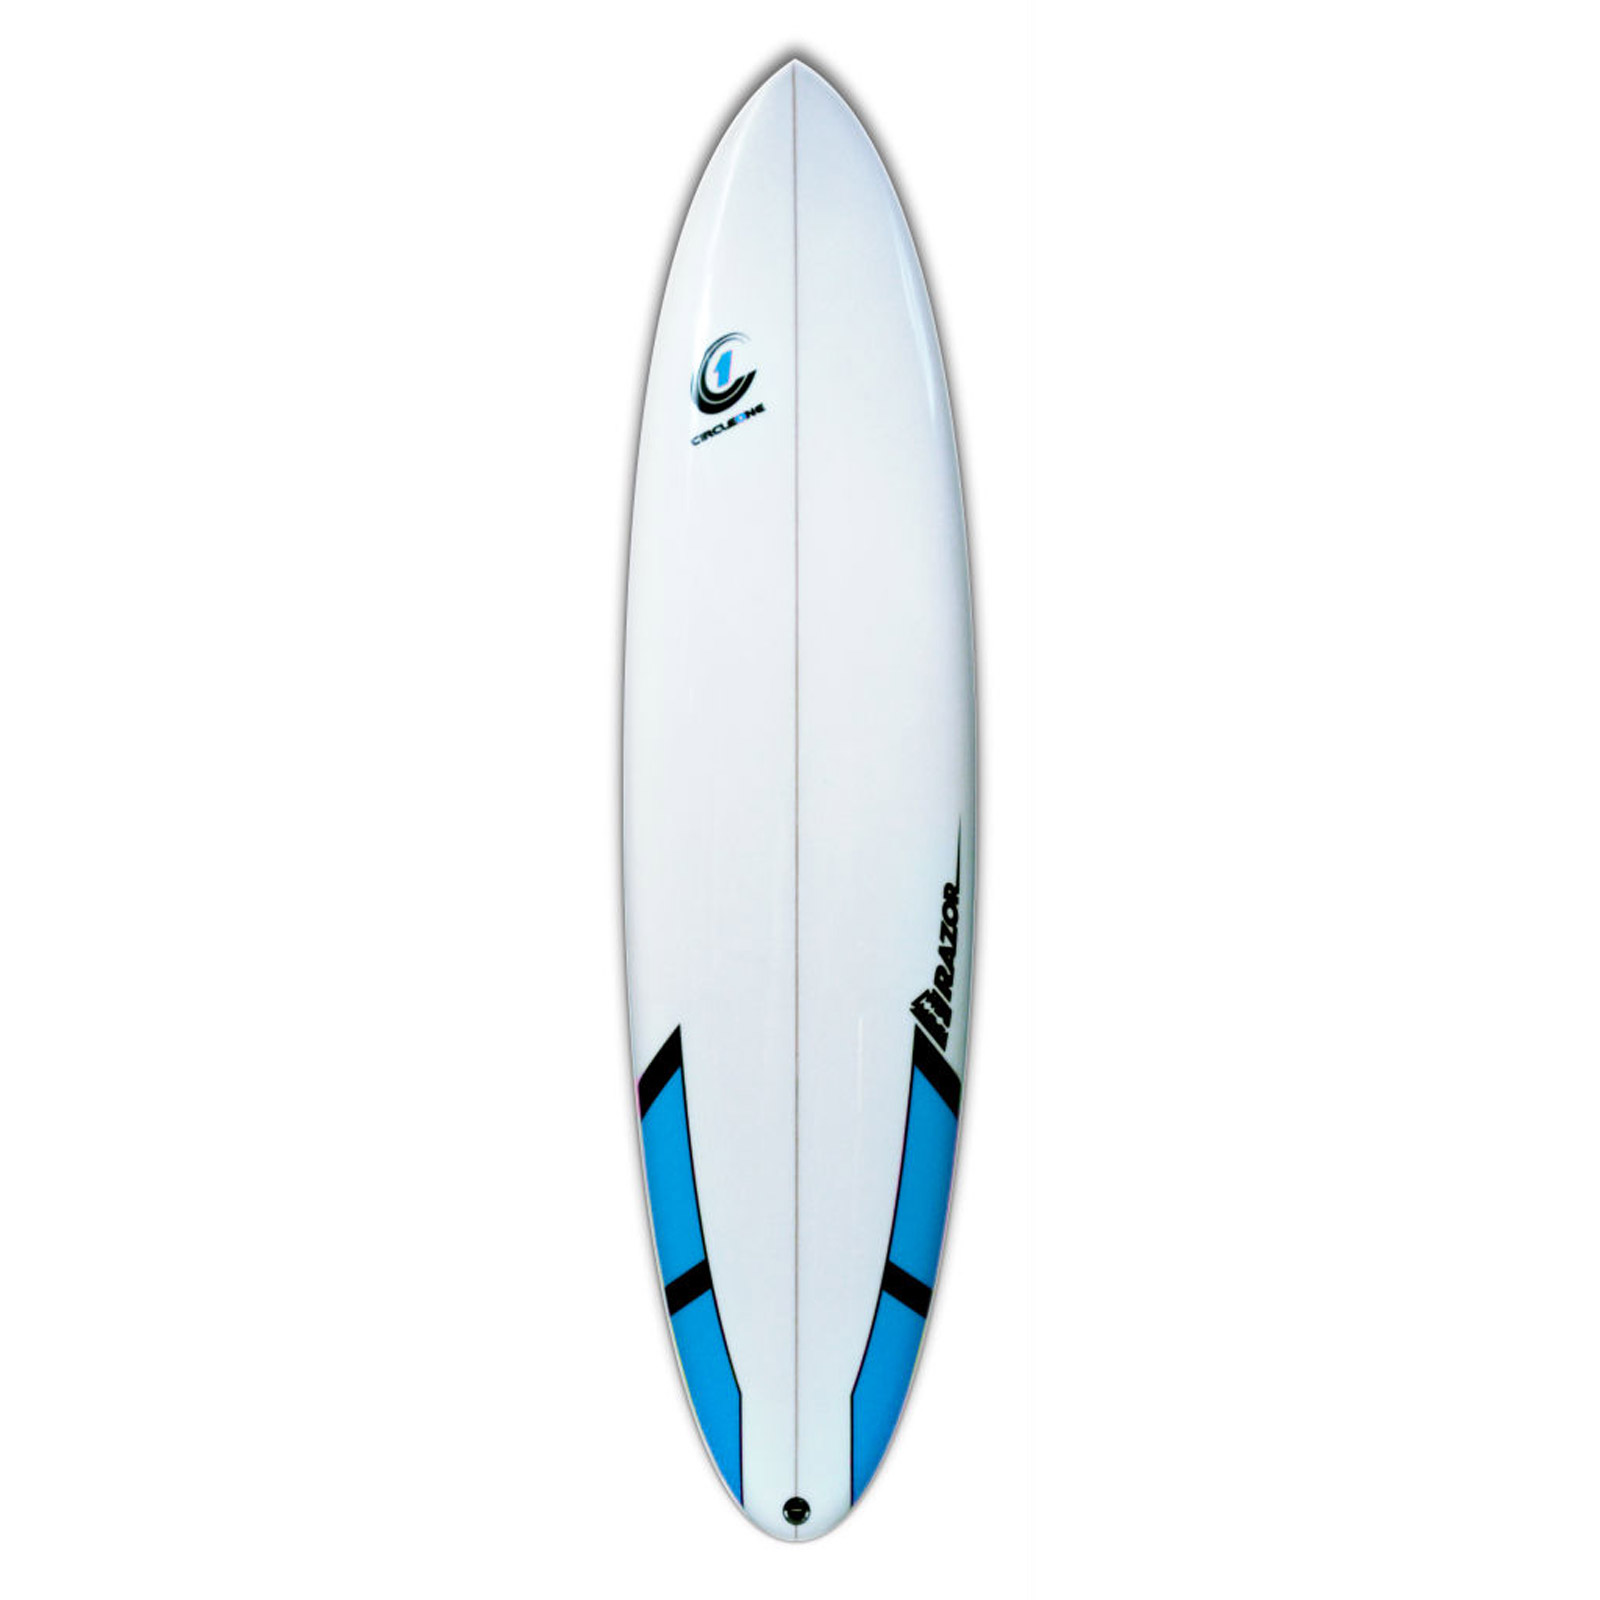 7ft 6inch Razor Mini Mal Surfboard - Round Tail - Matt Finish